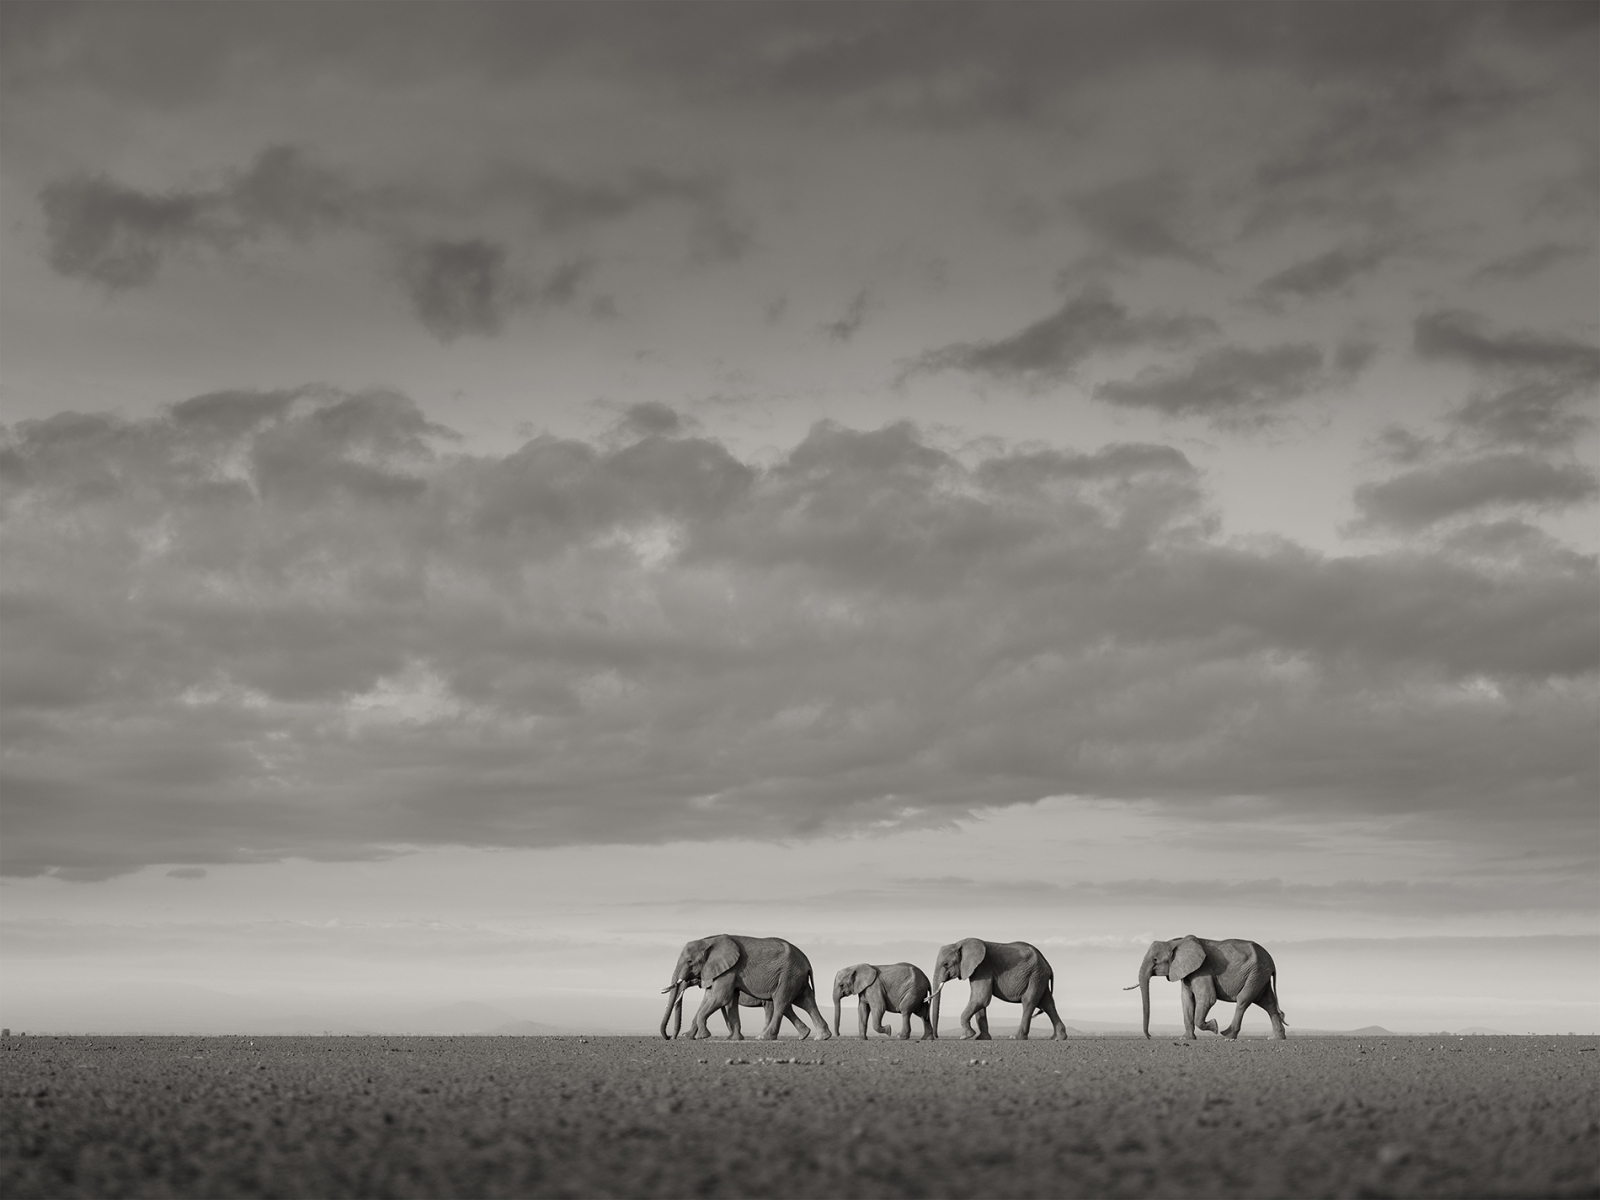 Elephants-crossing_2017_1900